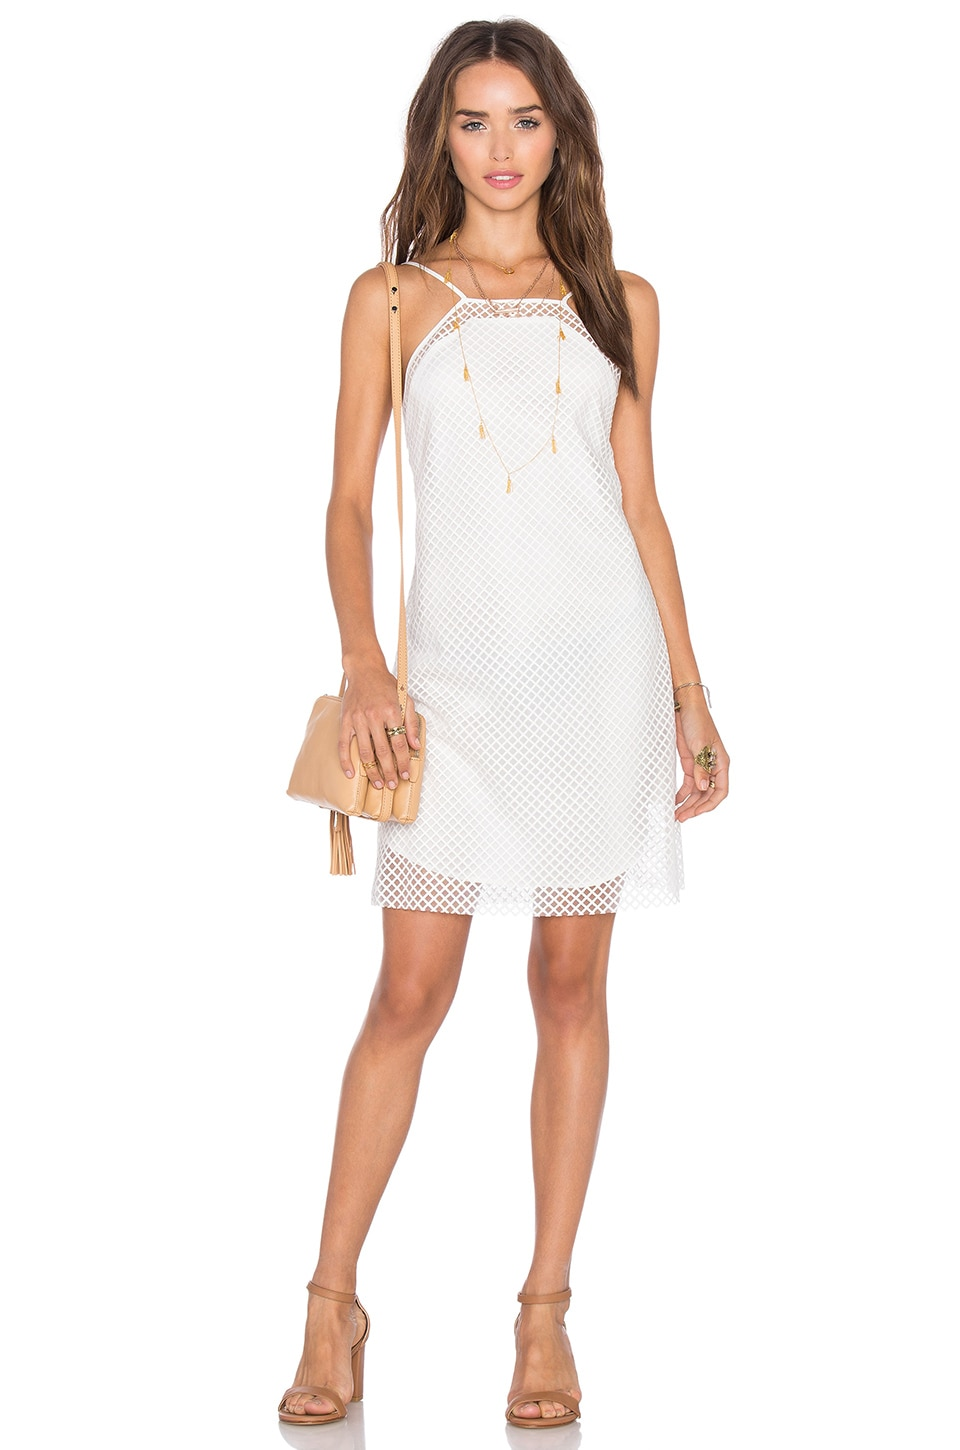 NBD Memories You Call Dress in Ivory